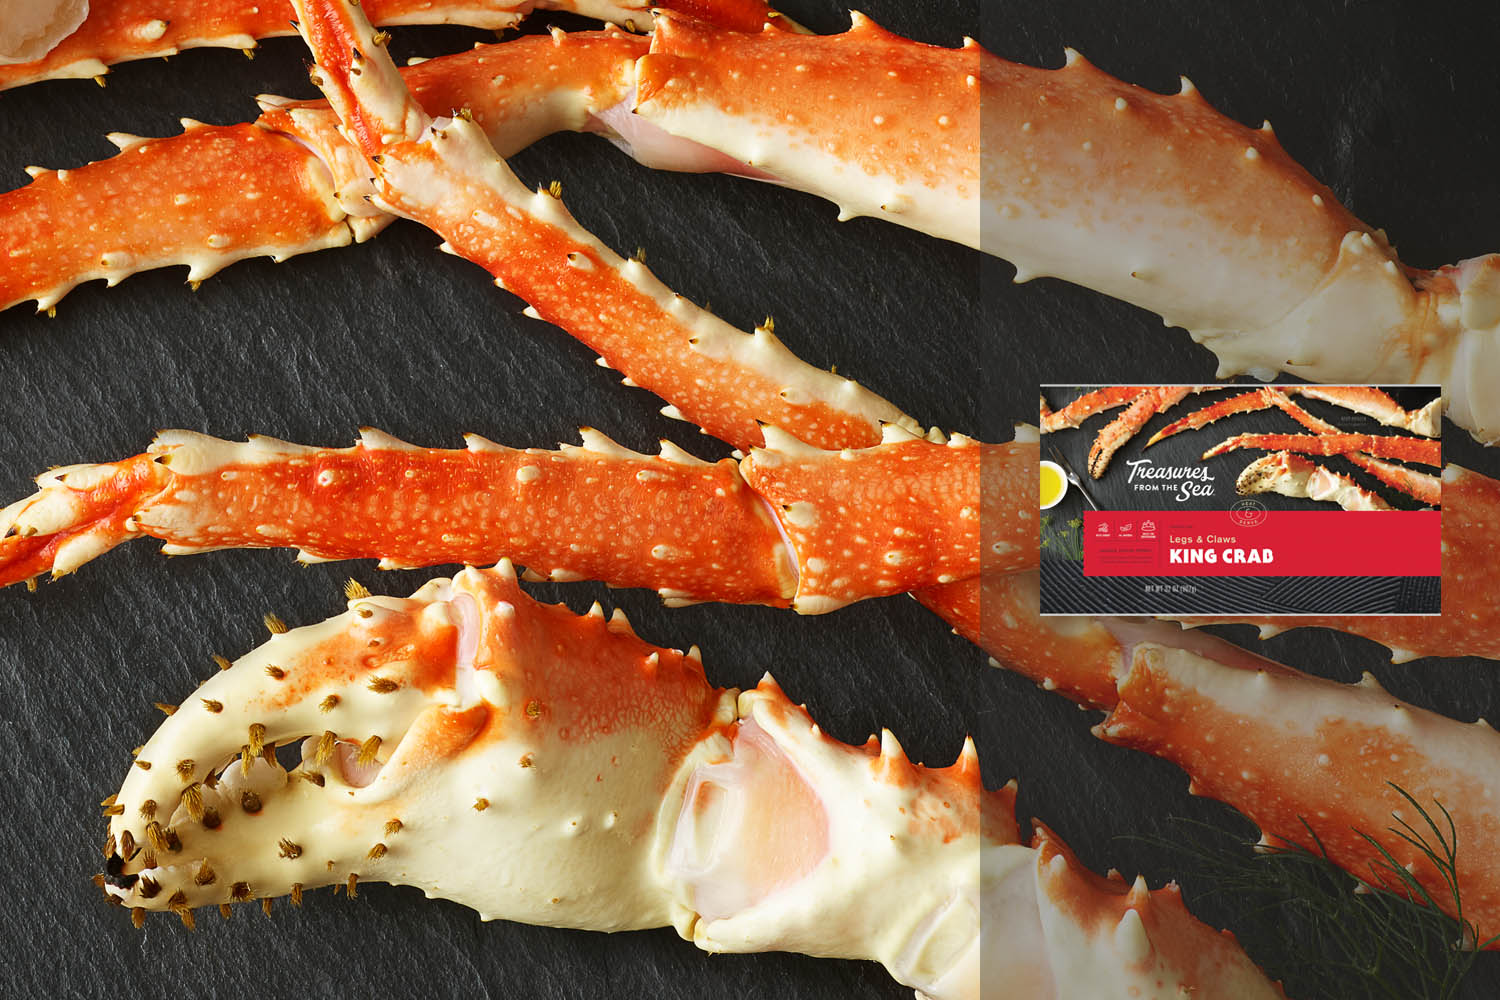 KING CRAB LEGS & CLAWS